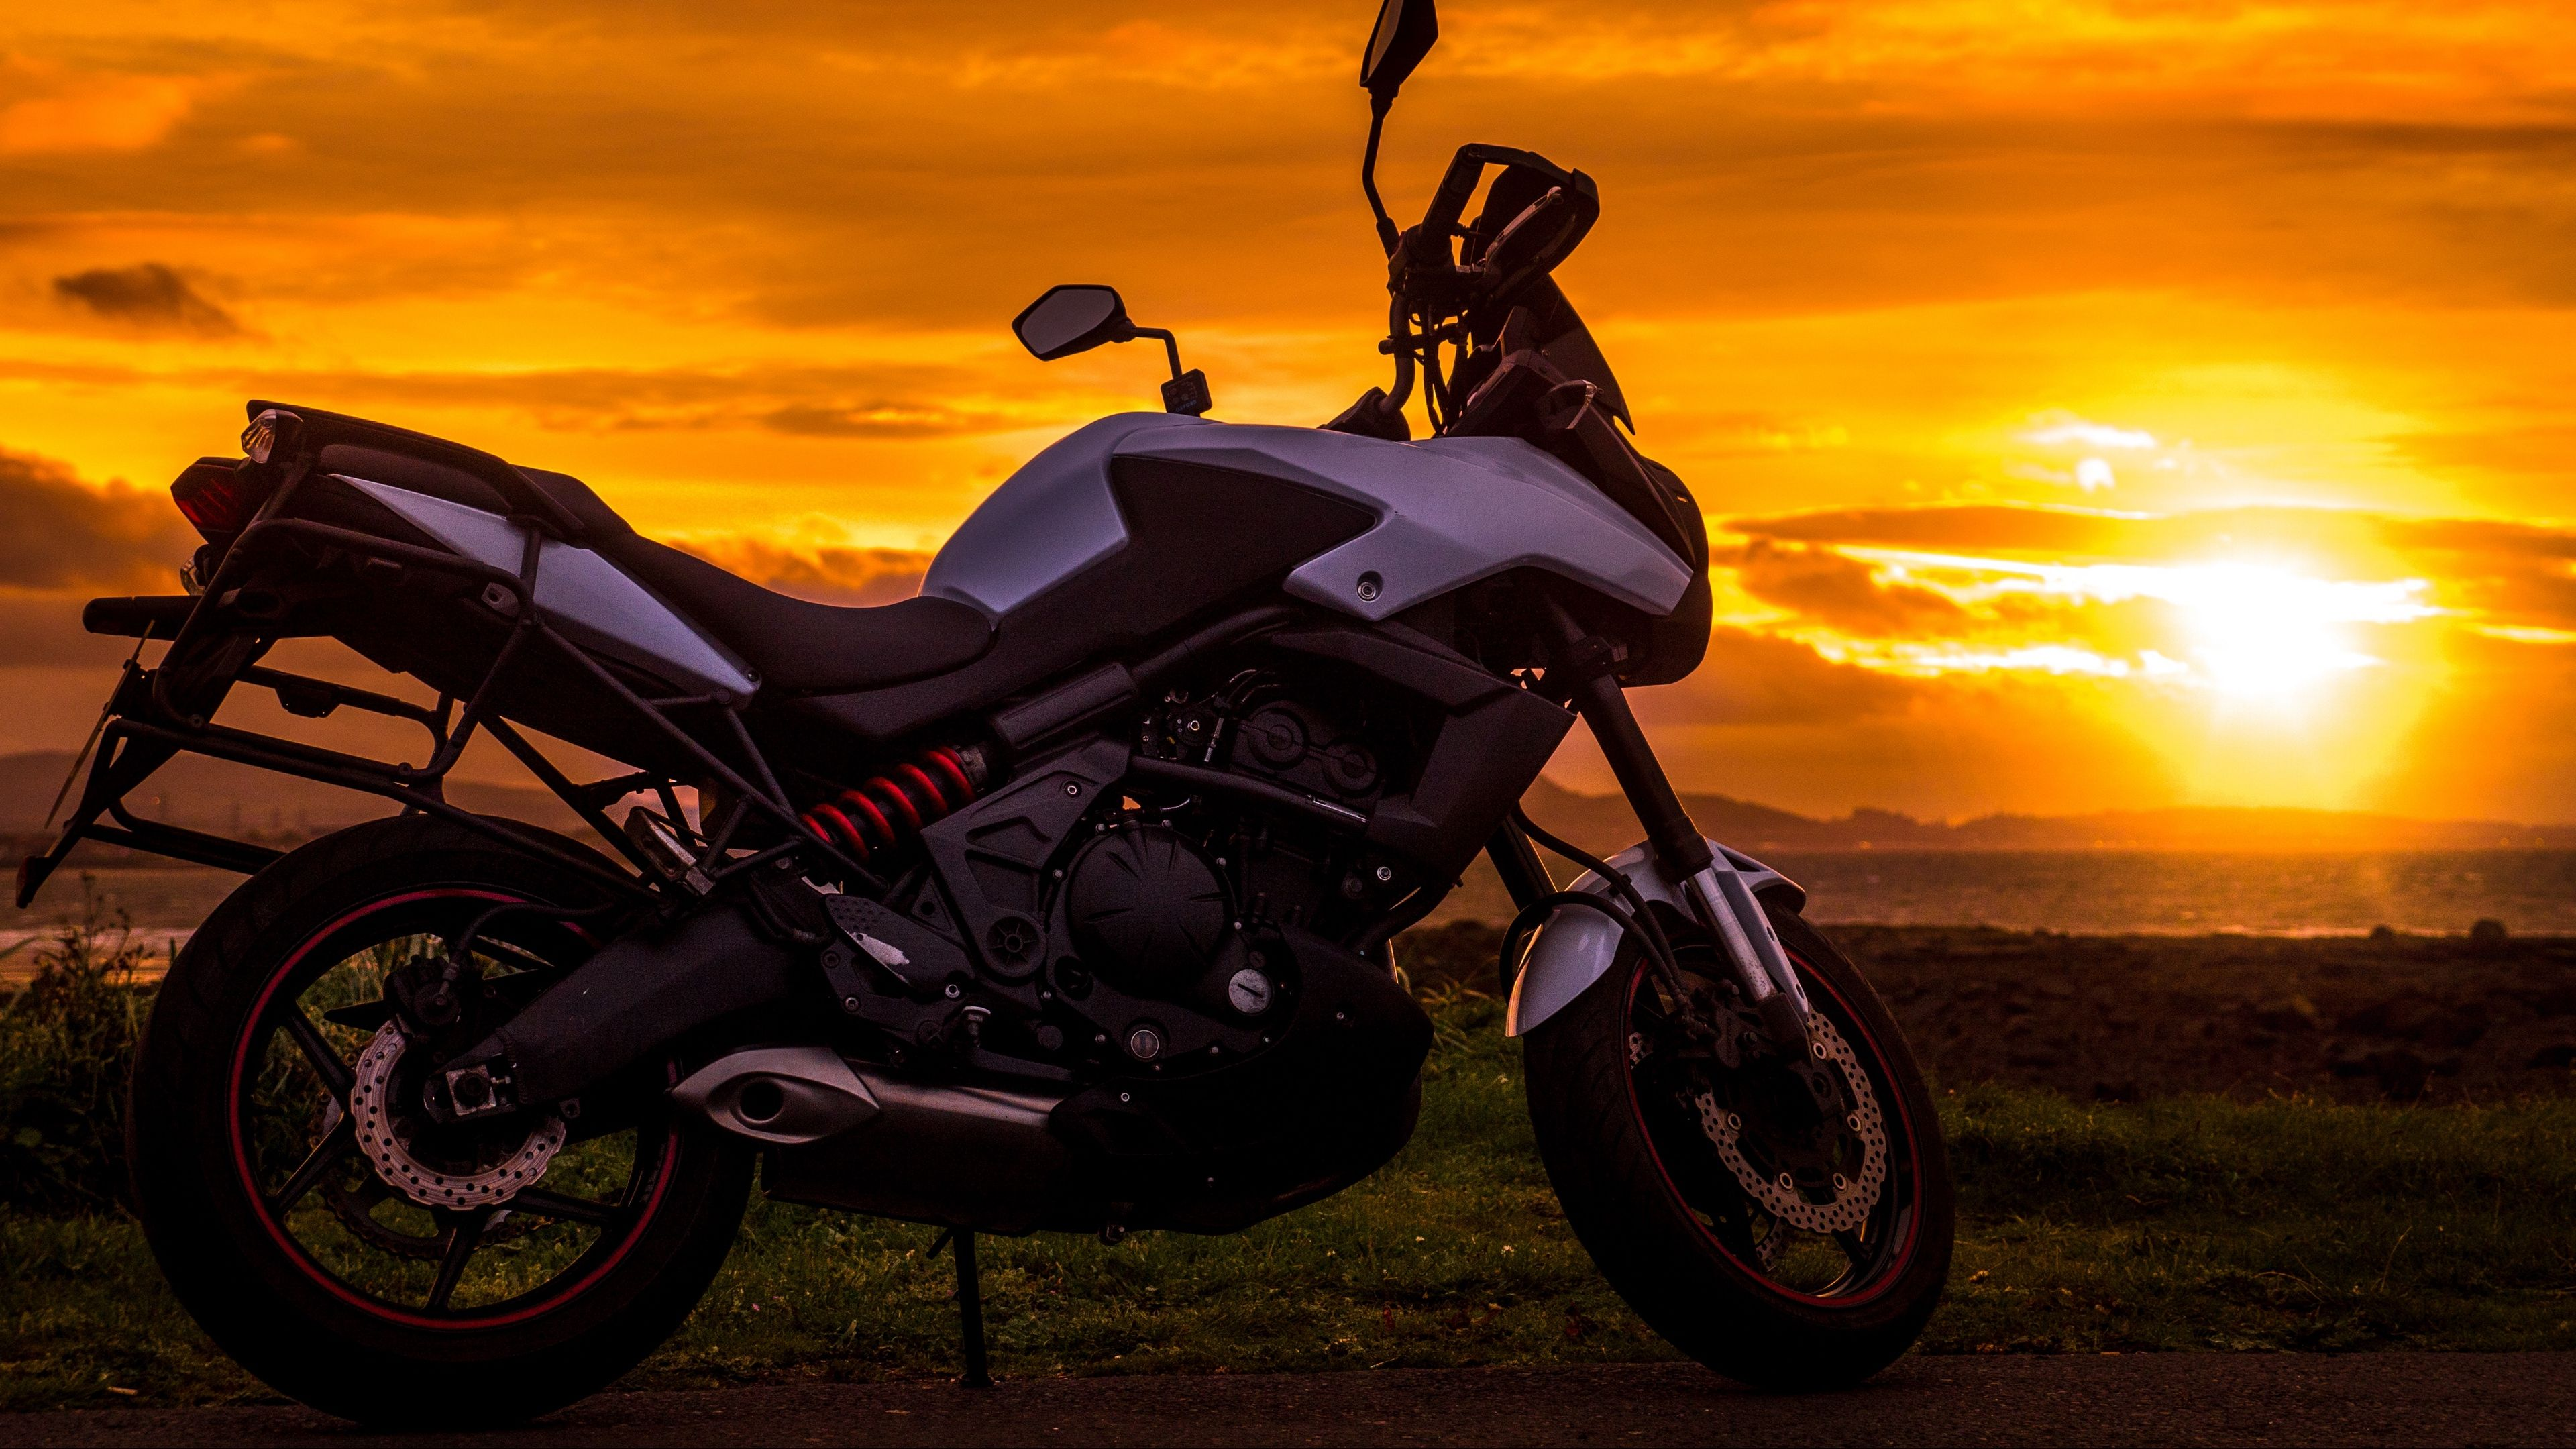 motorcycle sunset style 4k 4k HD Wallpapers Background hd 3840x2160